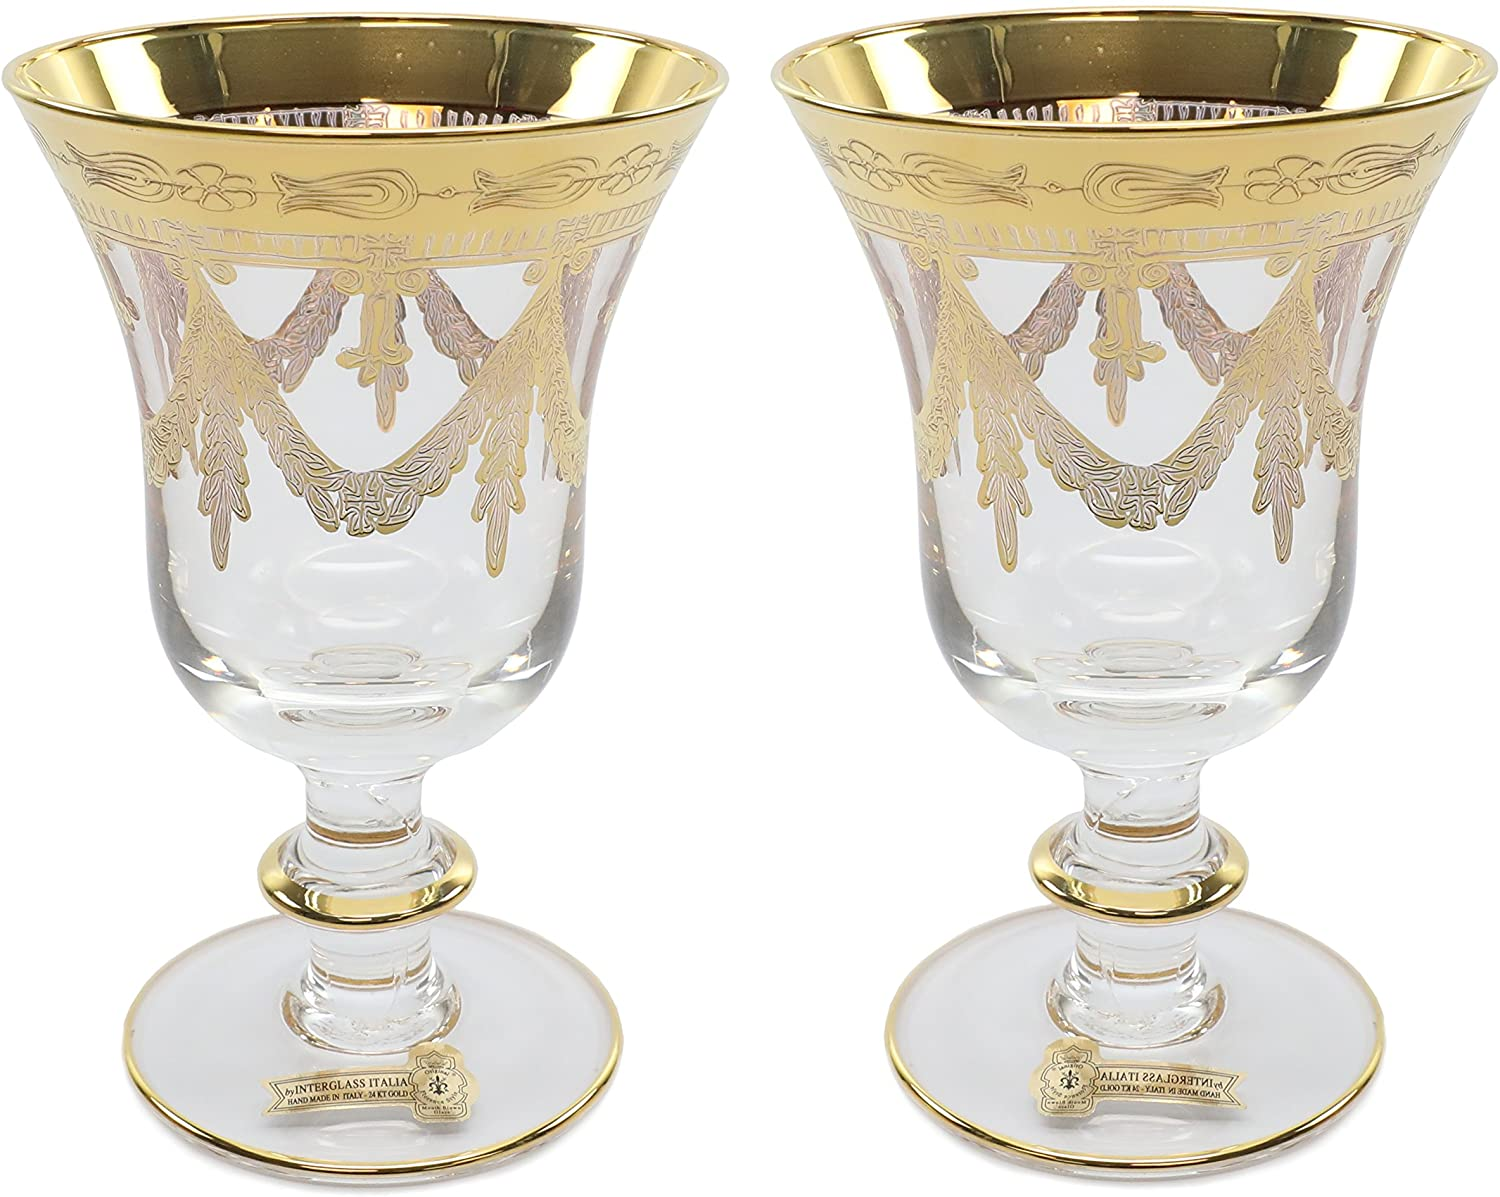 Interglass Italy 2-pc Luxury Crystal Glasses, Vintage Design, 24K Gold-Plated (Wine)